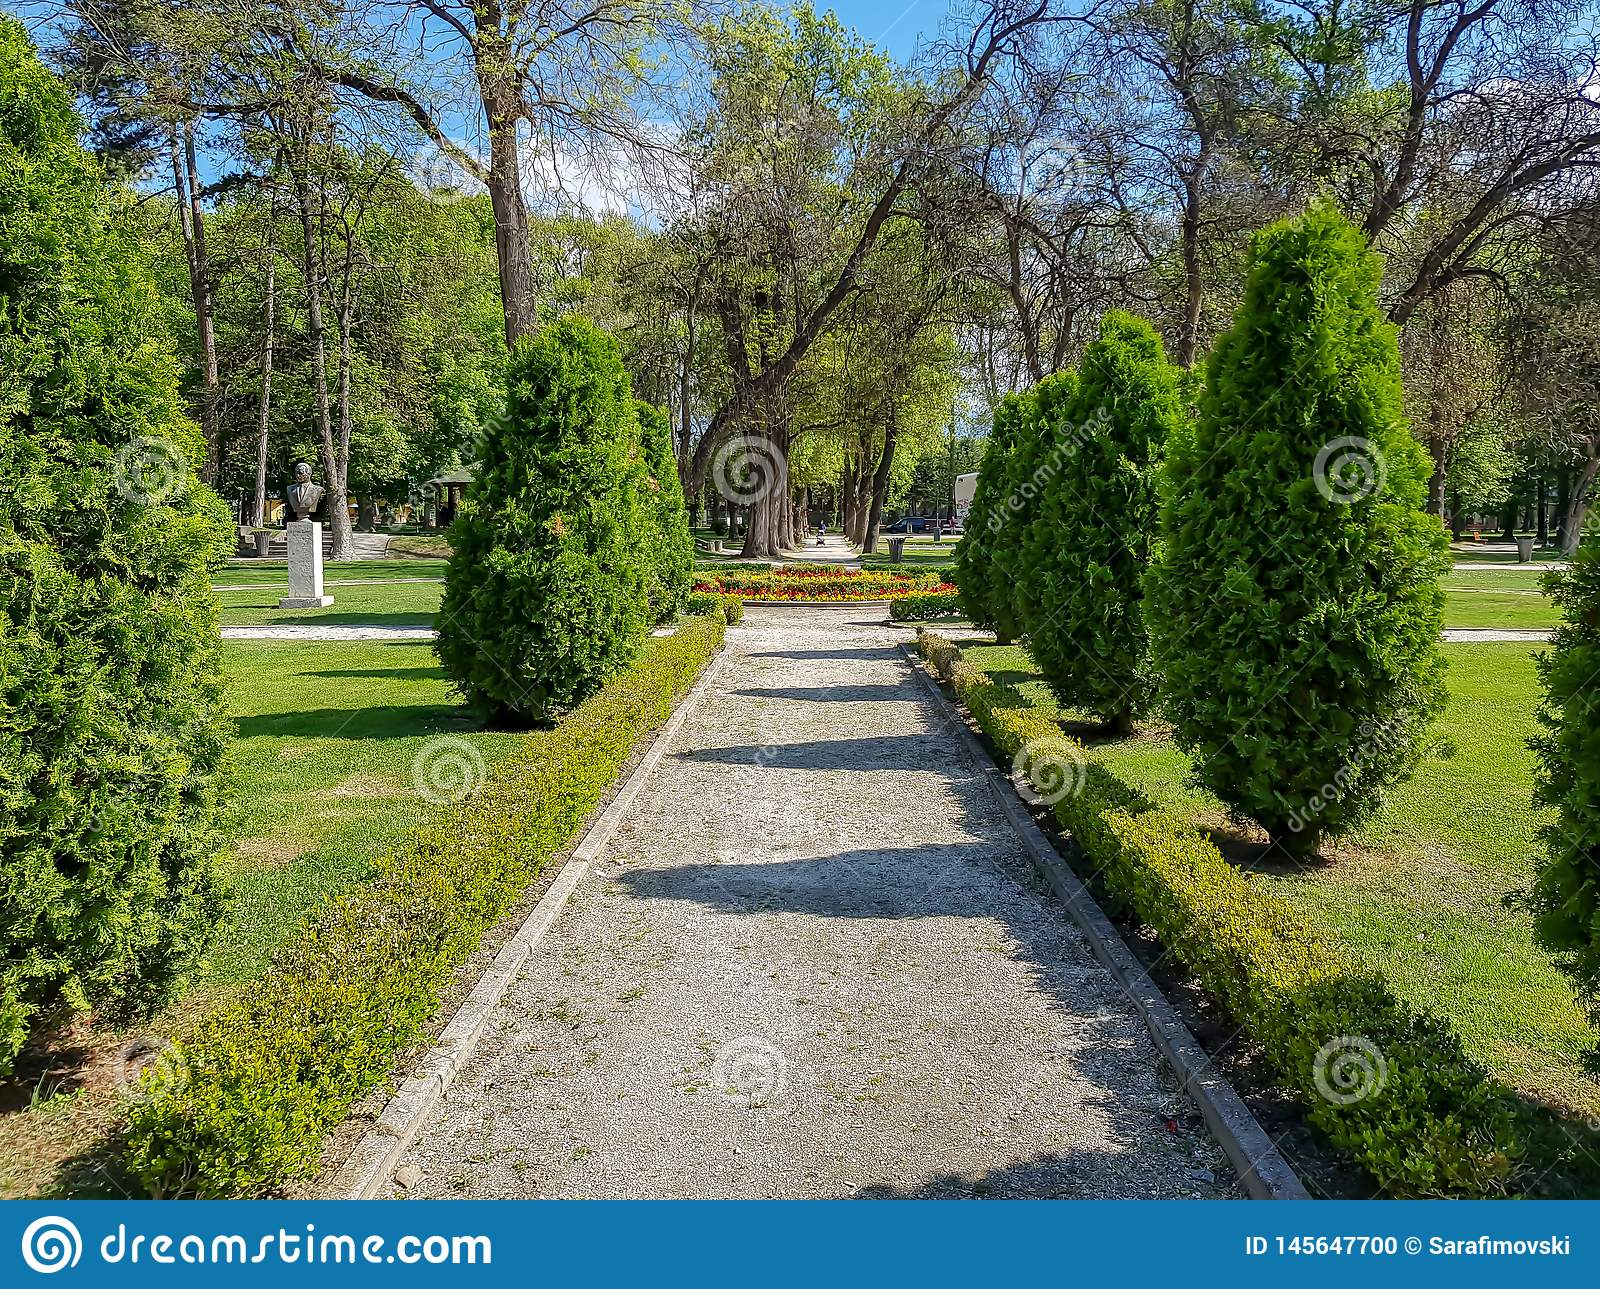 Landscaping decorative design. Raws of trees in city park with pathways